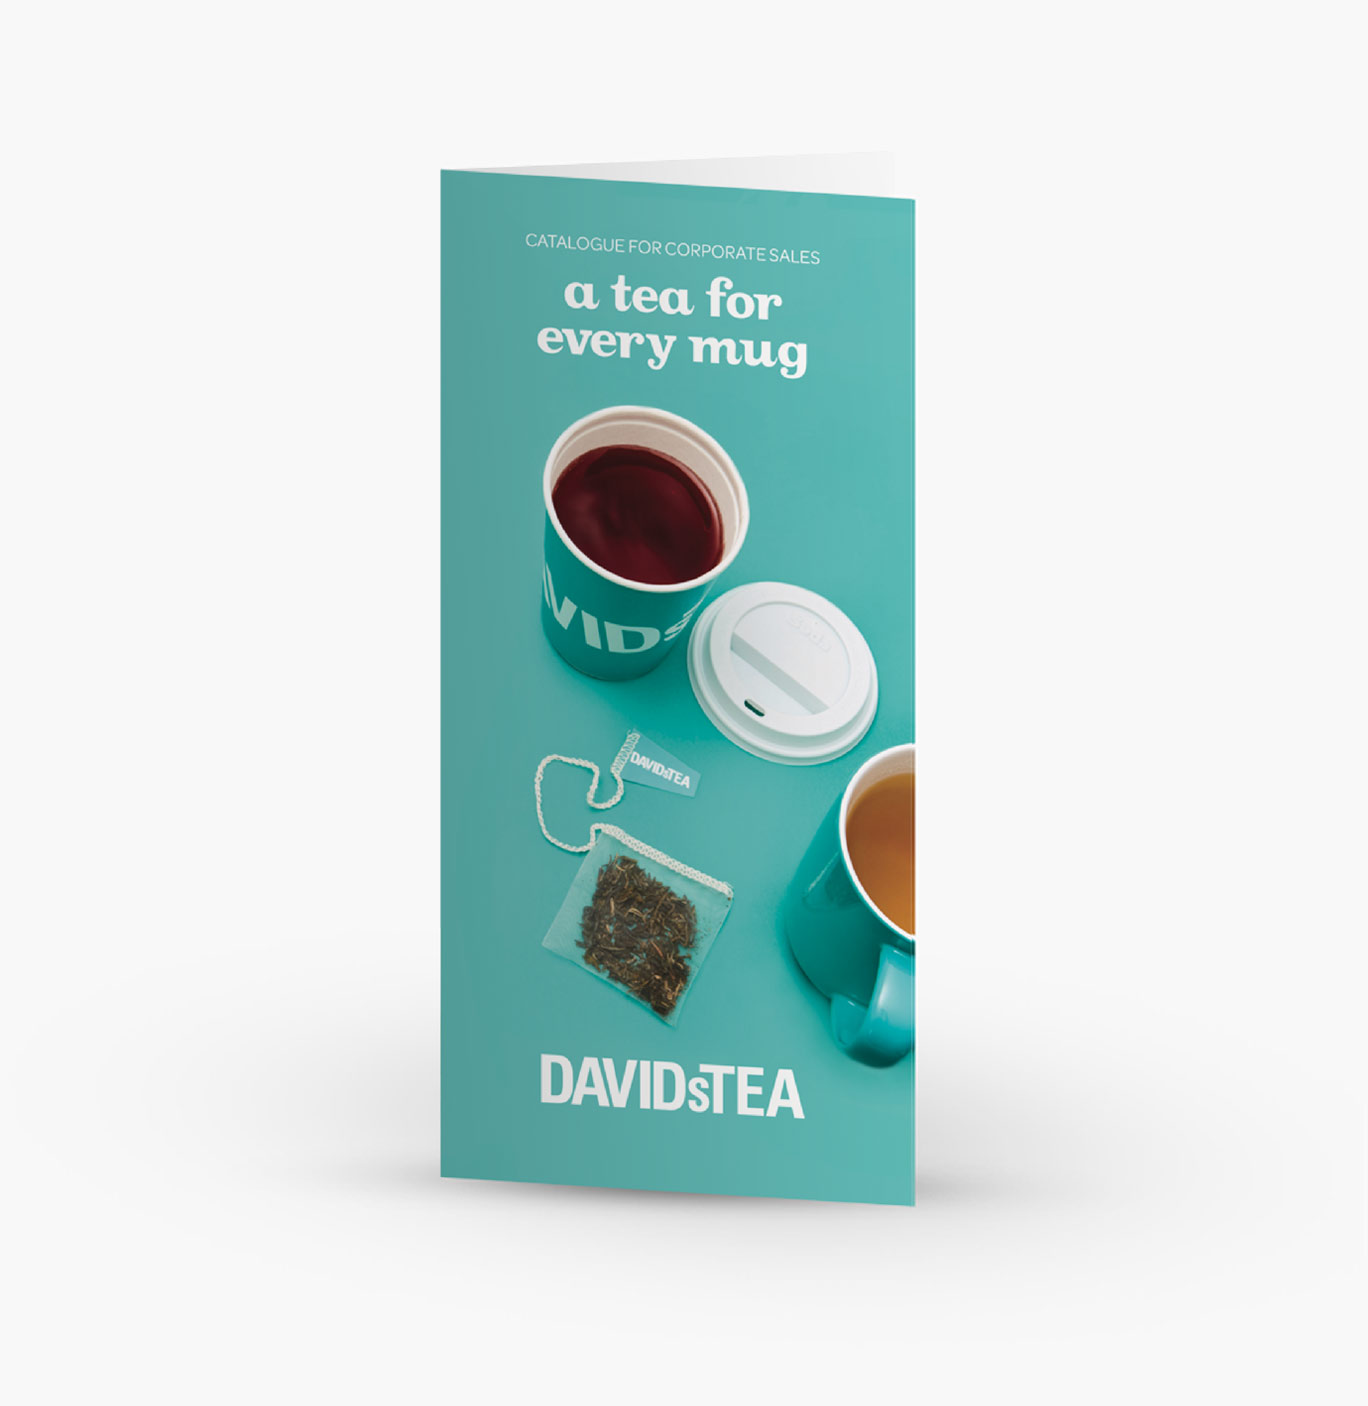 DAVIDsTEA brochure with to-go beverage cup, lid, teabag and 16 oz ceramic mug on cover.